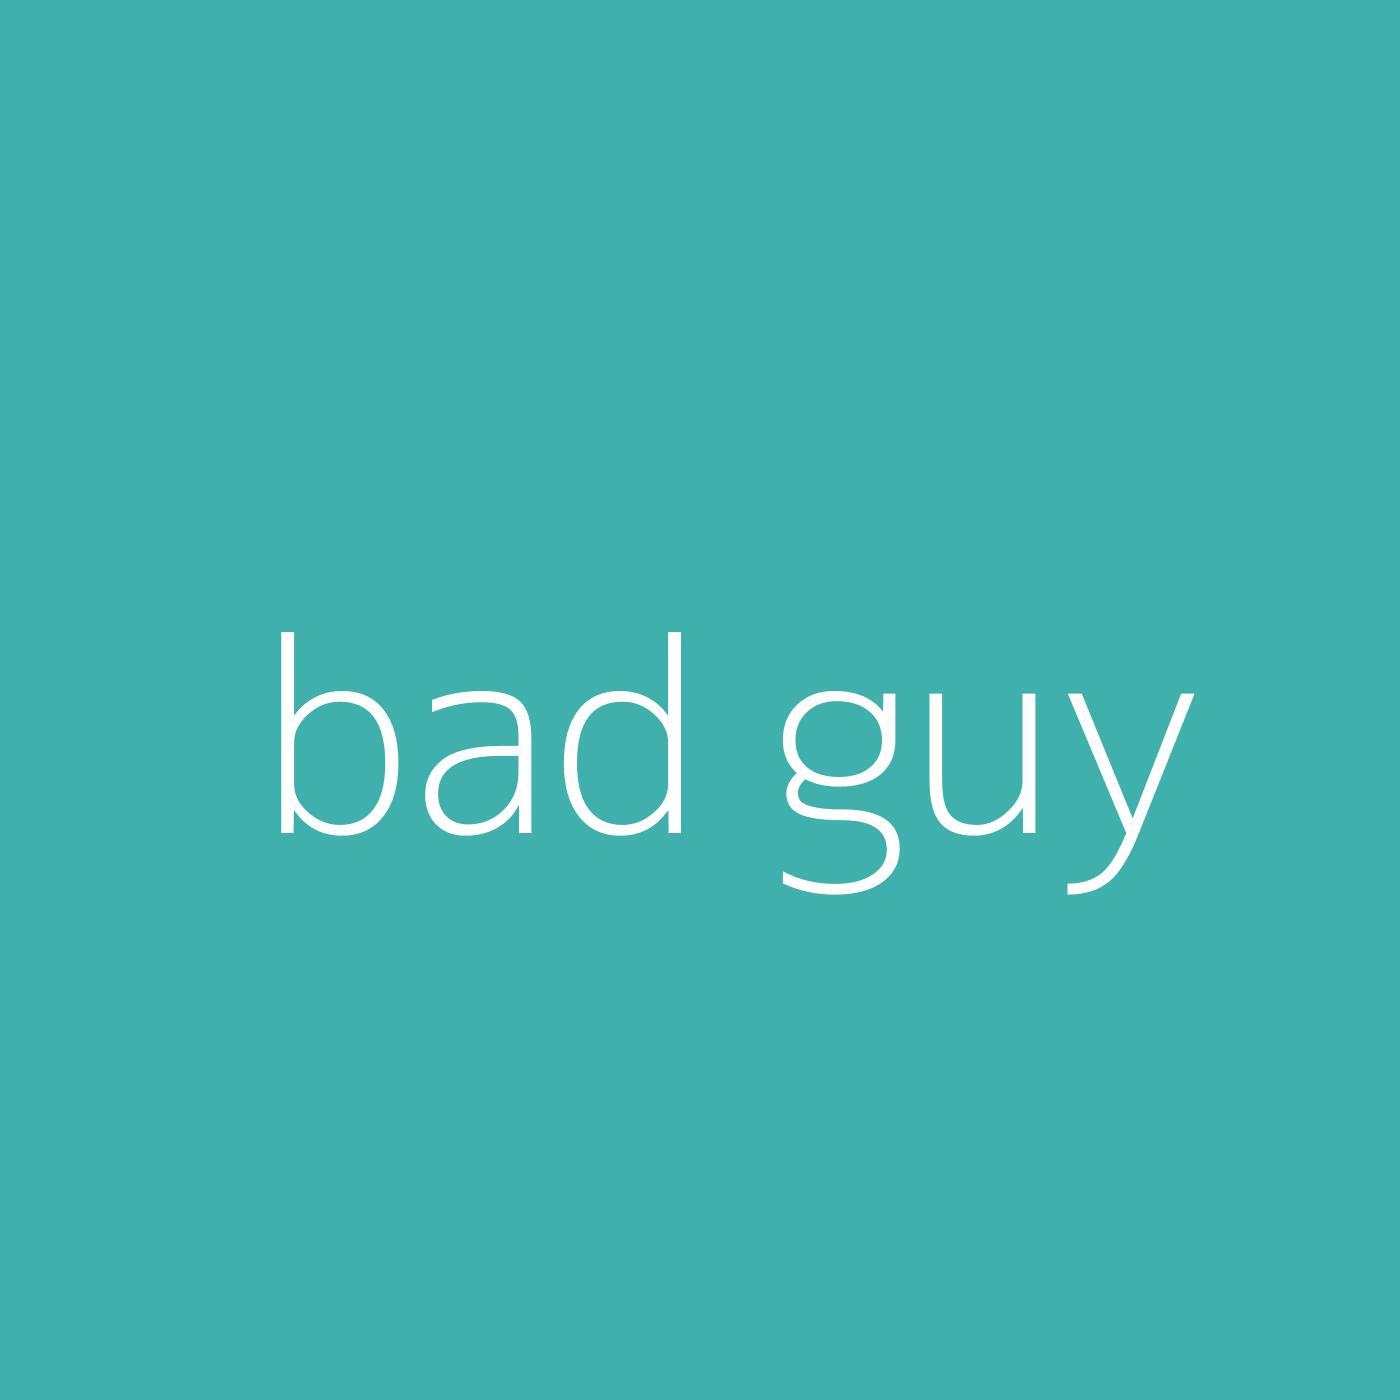 bad guy – Billie Eilish